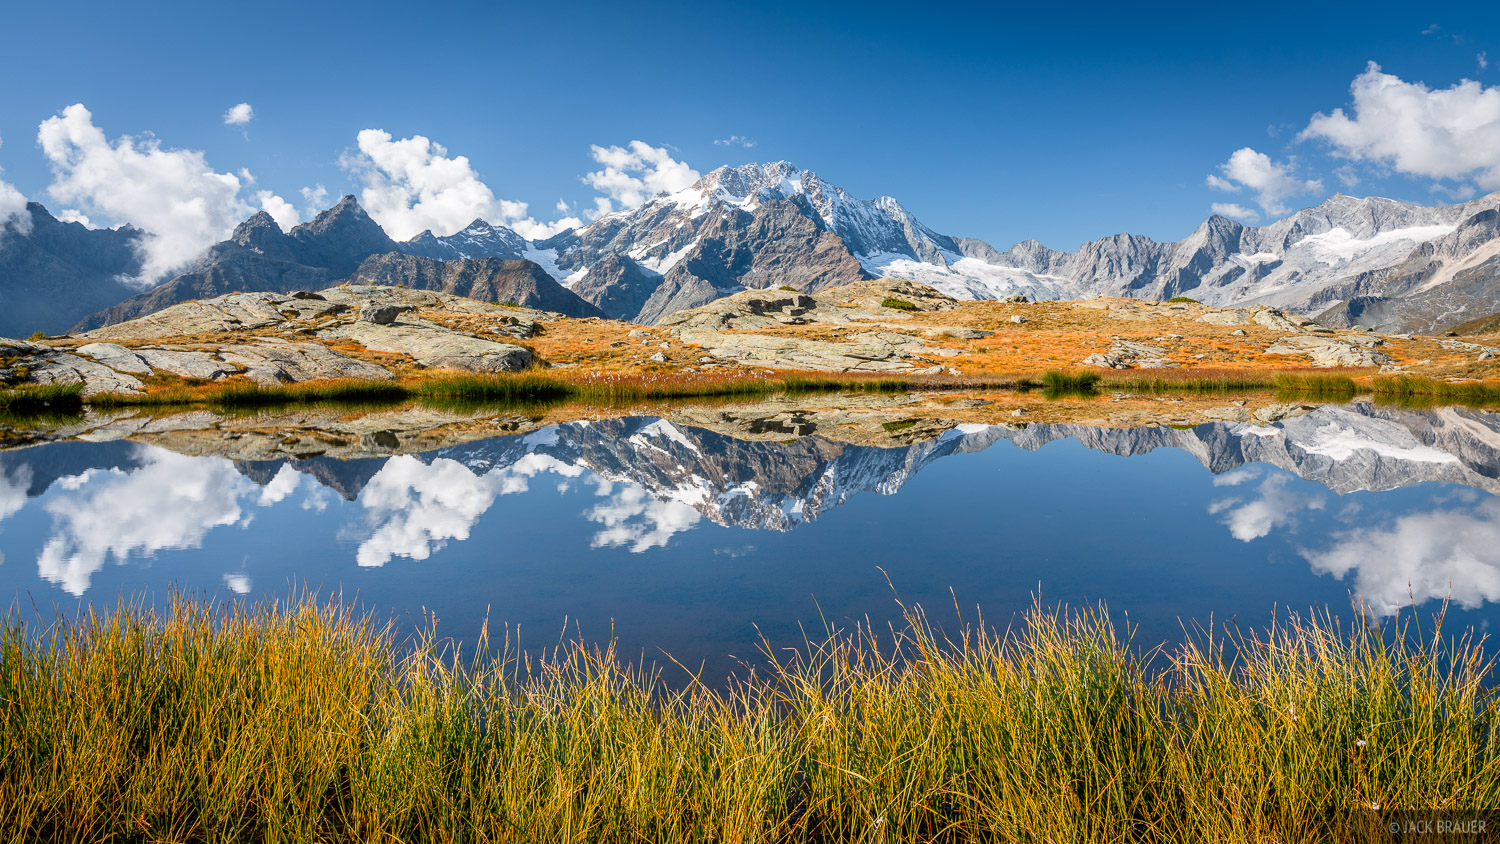 Bernina Range, Italy, Monte Disgrazia, Rhaetian Alps, reflection, photo